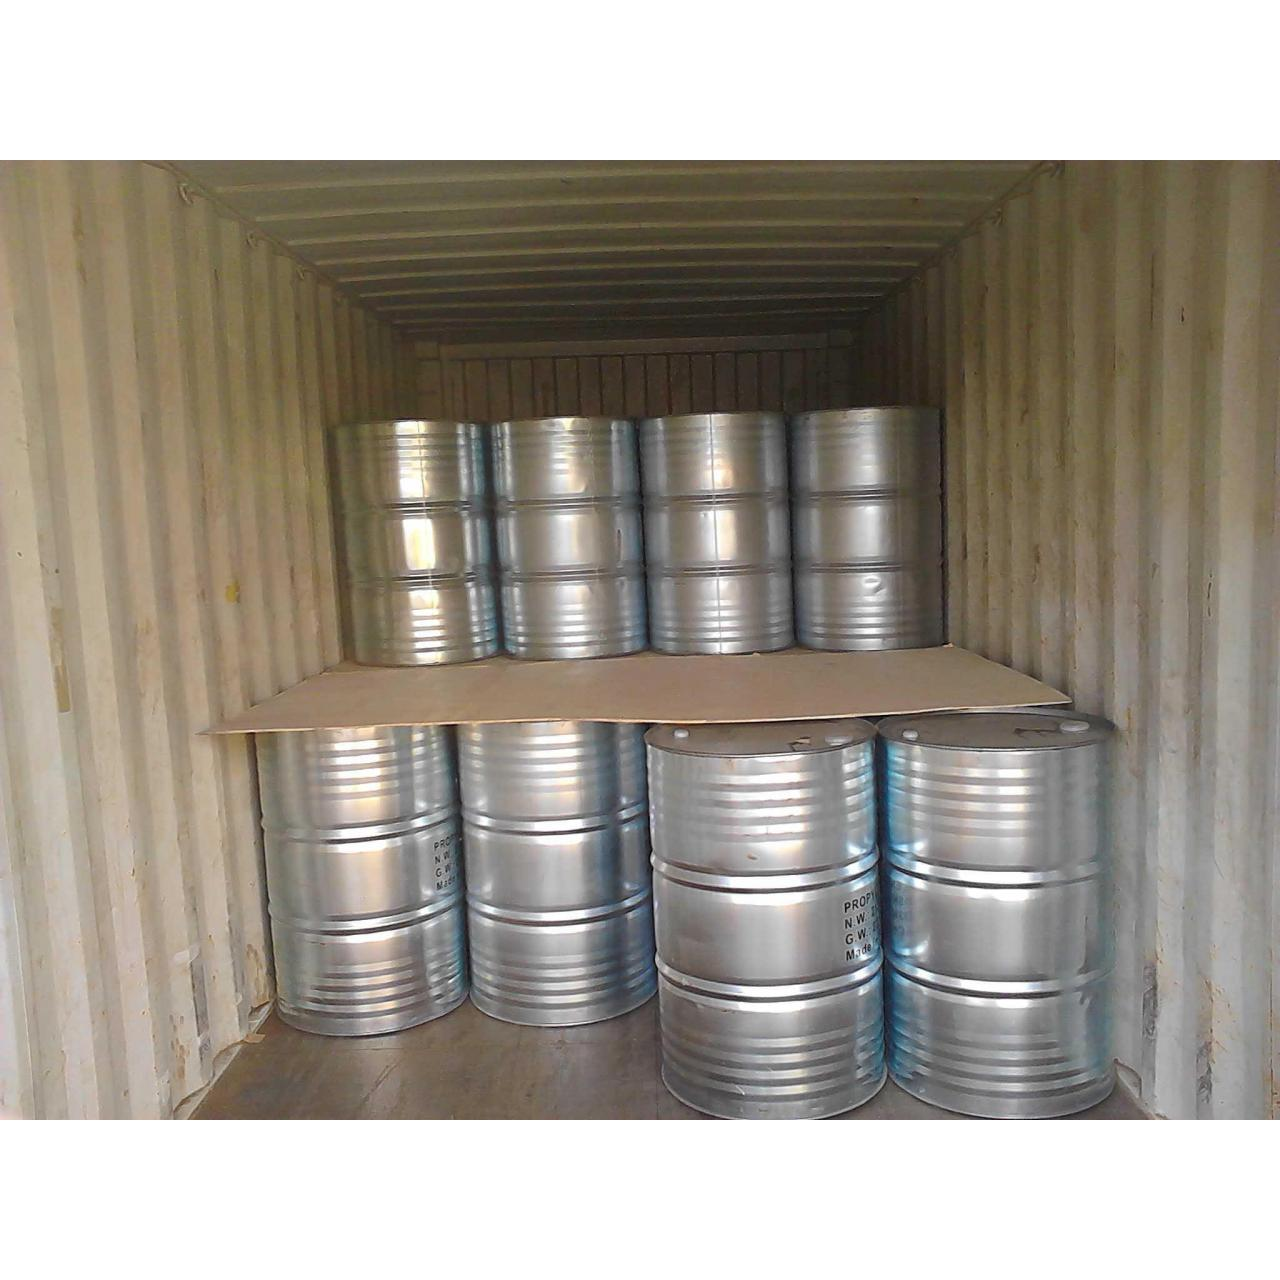 China Propylene glycol wholesale